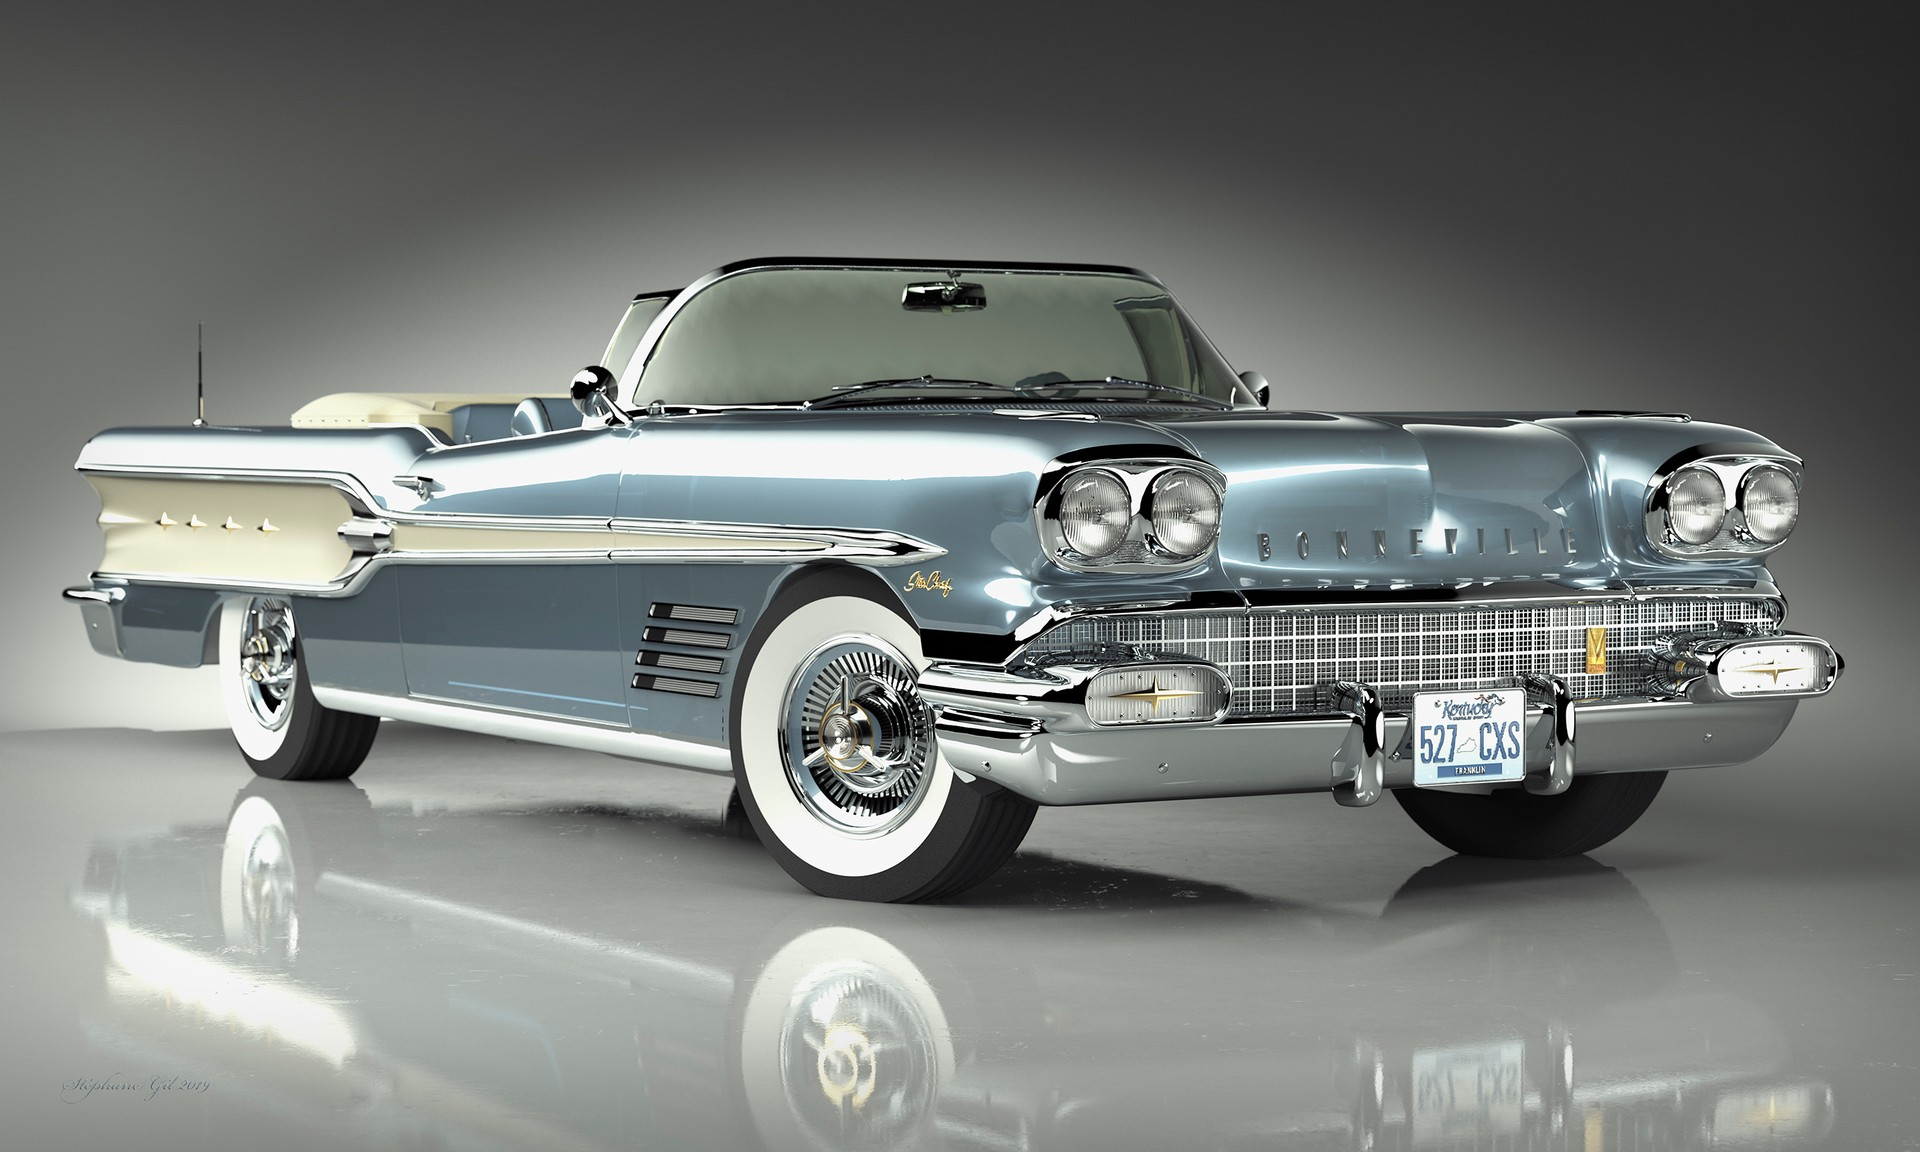 PONTIAC BONNEVILLE1958-SHOOT 1 par angelesteban